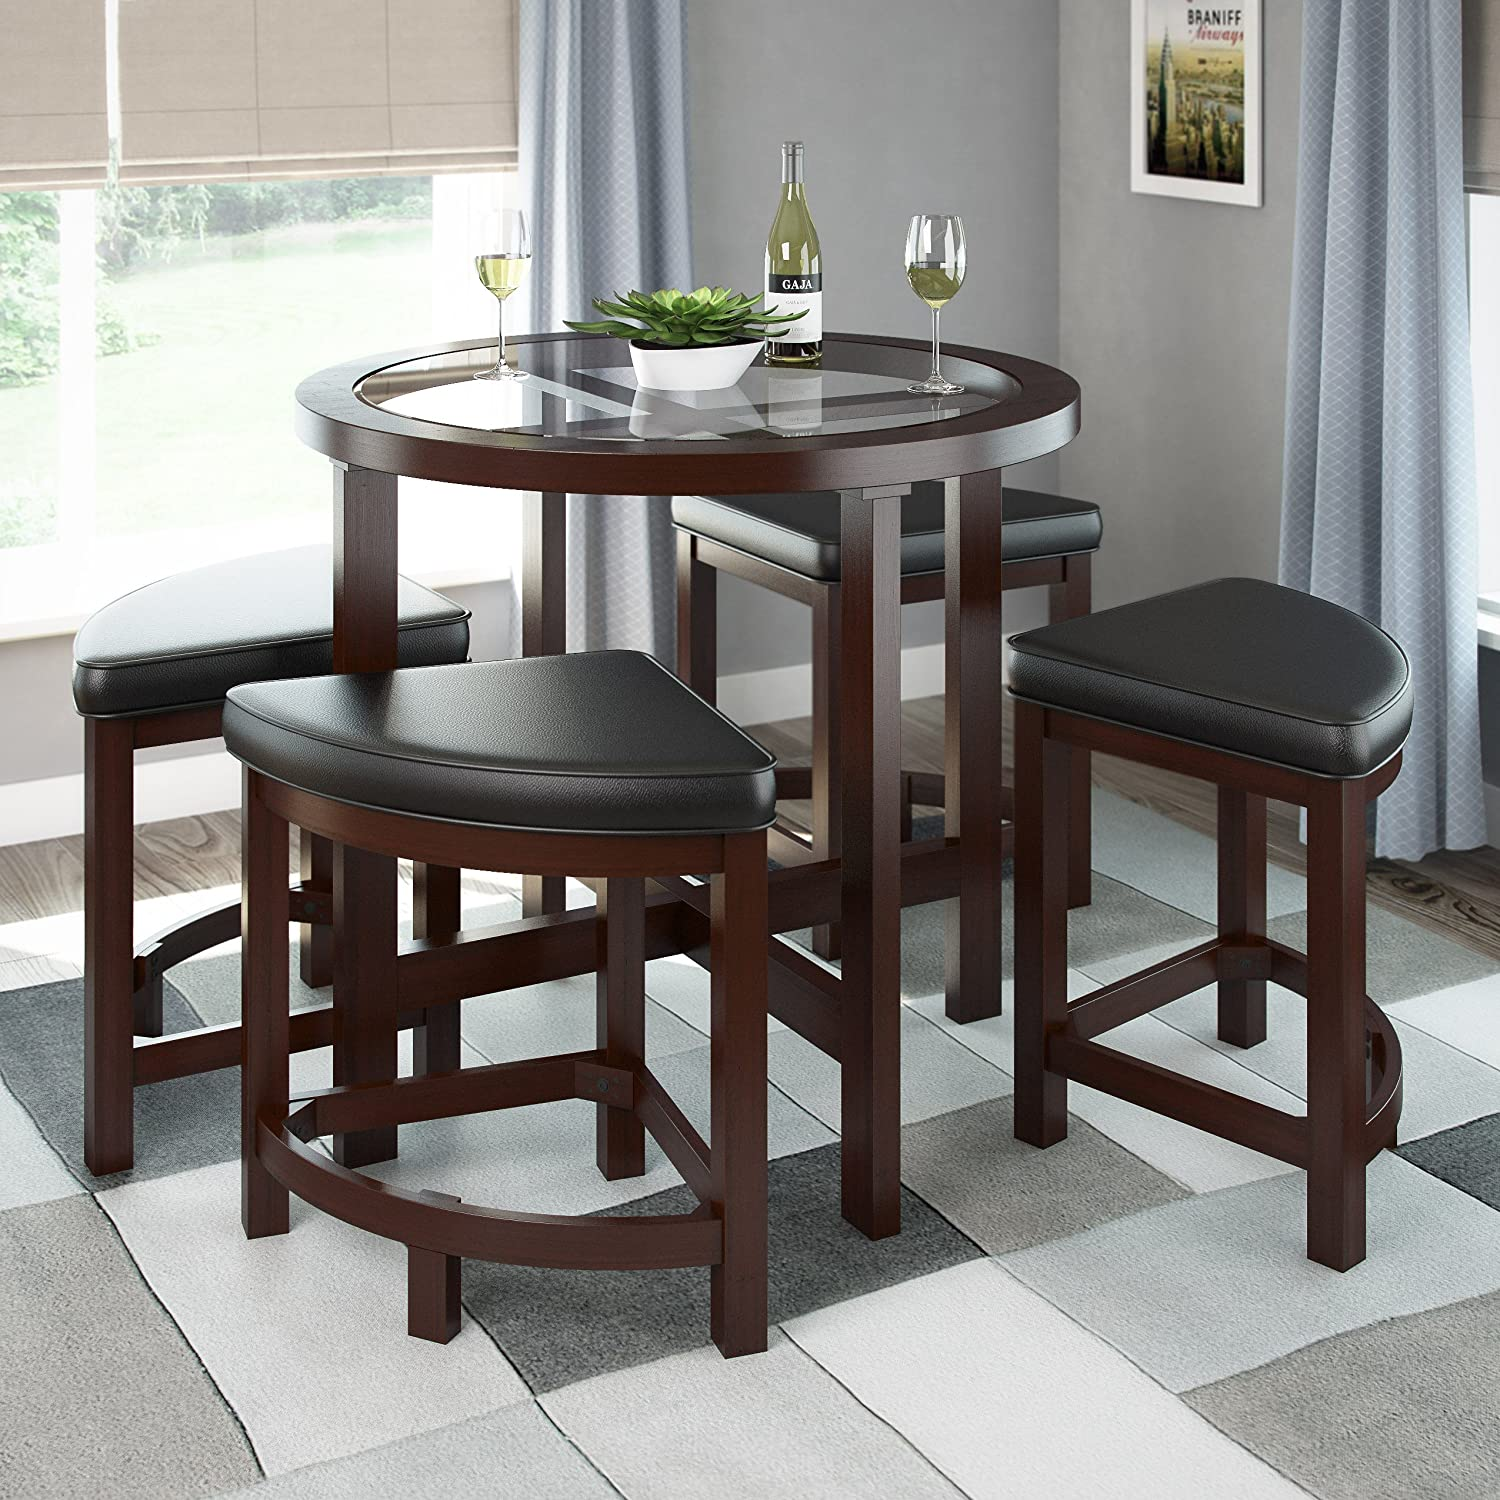 Amazon.com - CorLiving DBG-699-K Belgrove Dark Espresso Stained Dining Table with 4 Stools - Tables & Amazon.com - CorLiving DBG-699-K Belgrove Dark Espresso Stained ... islam-shia.org